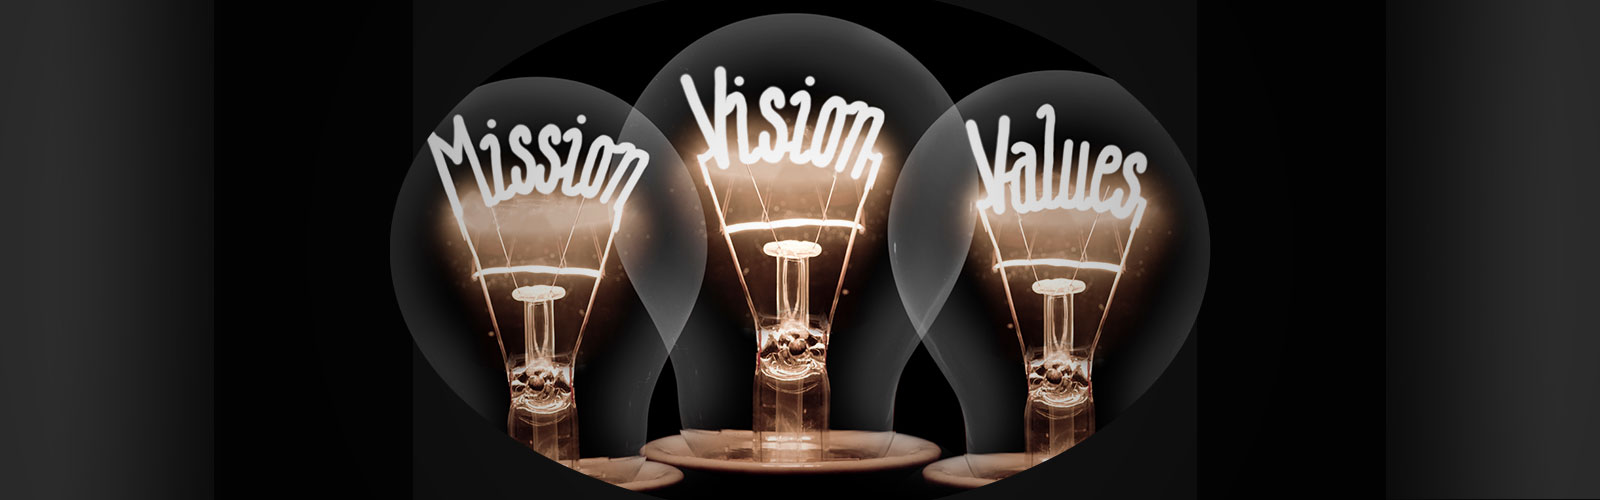 Mission-Vision-Values_Banner.jpg